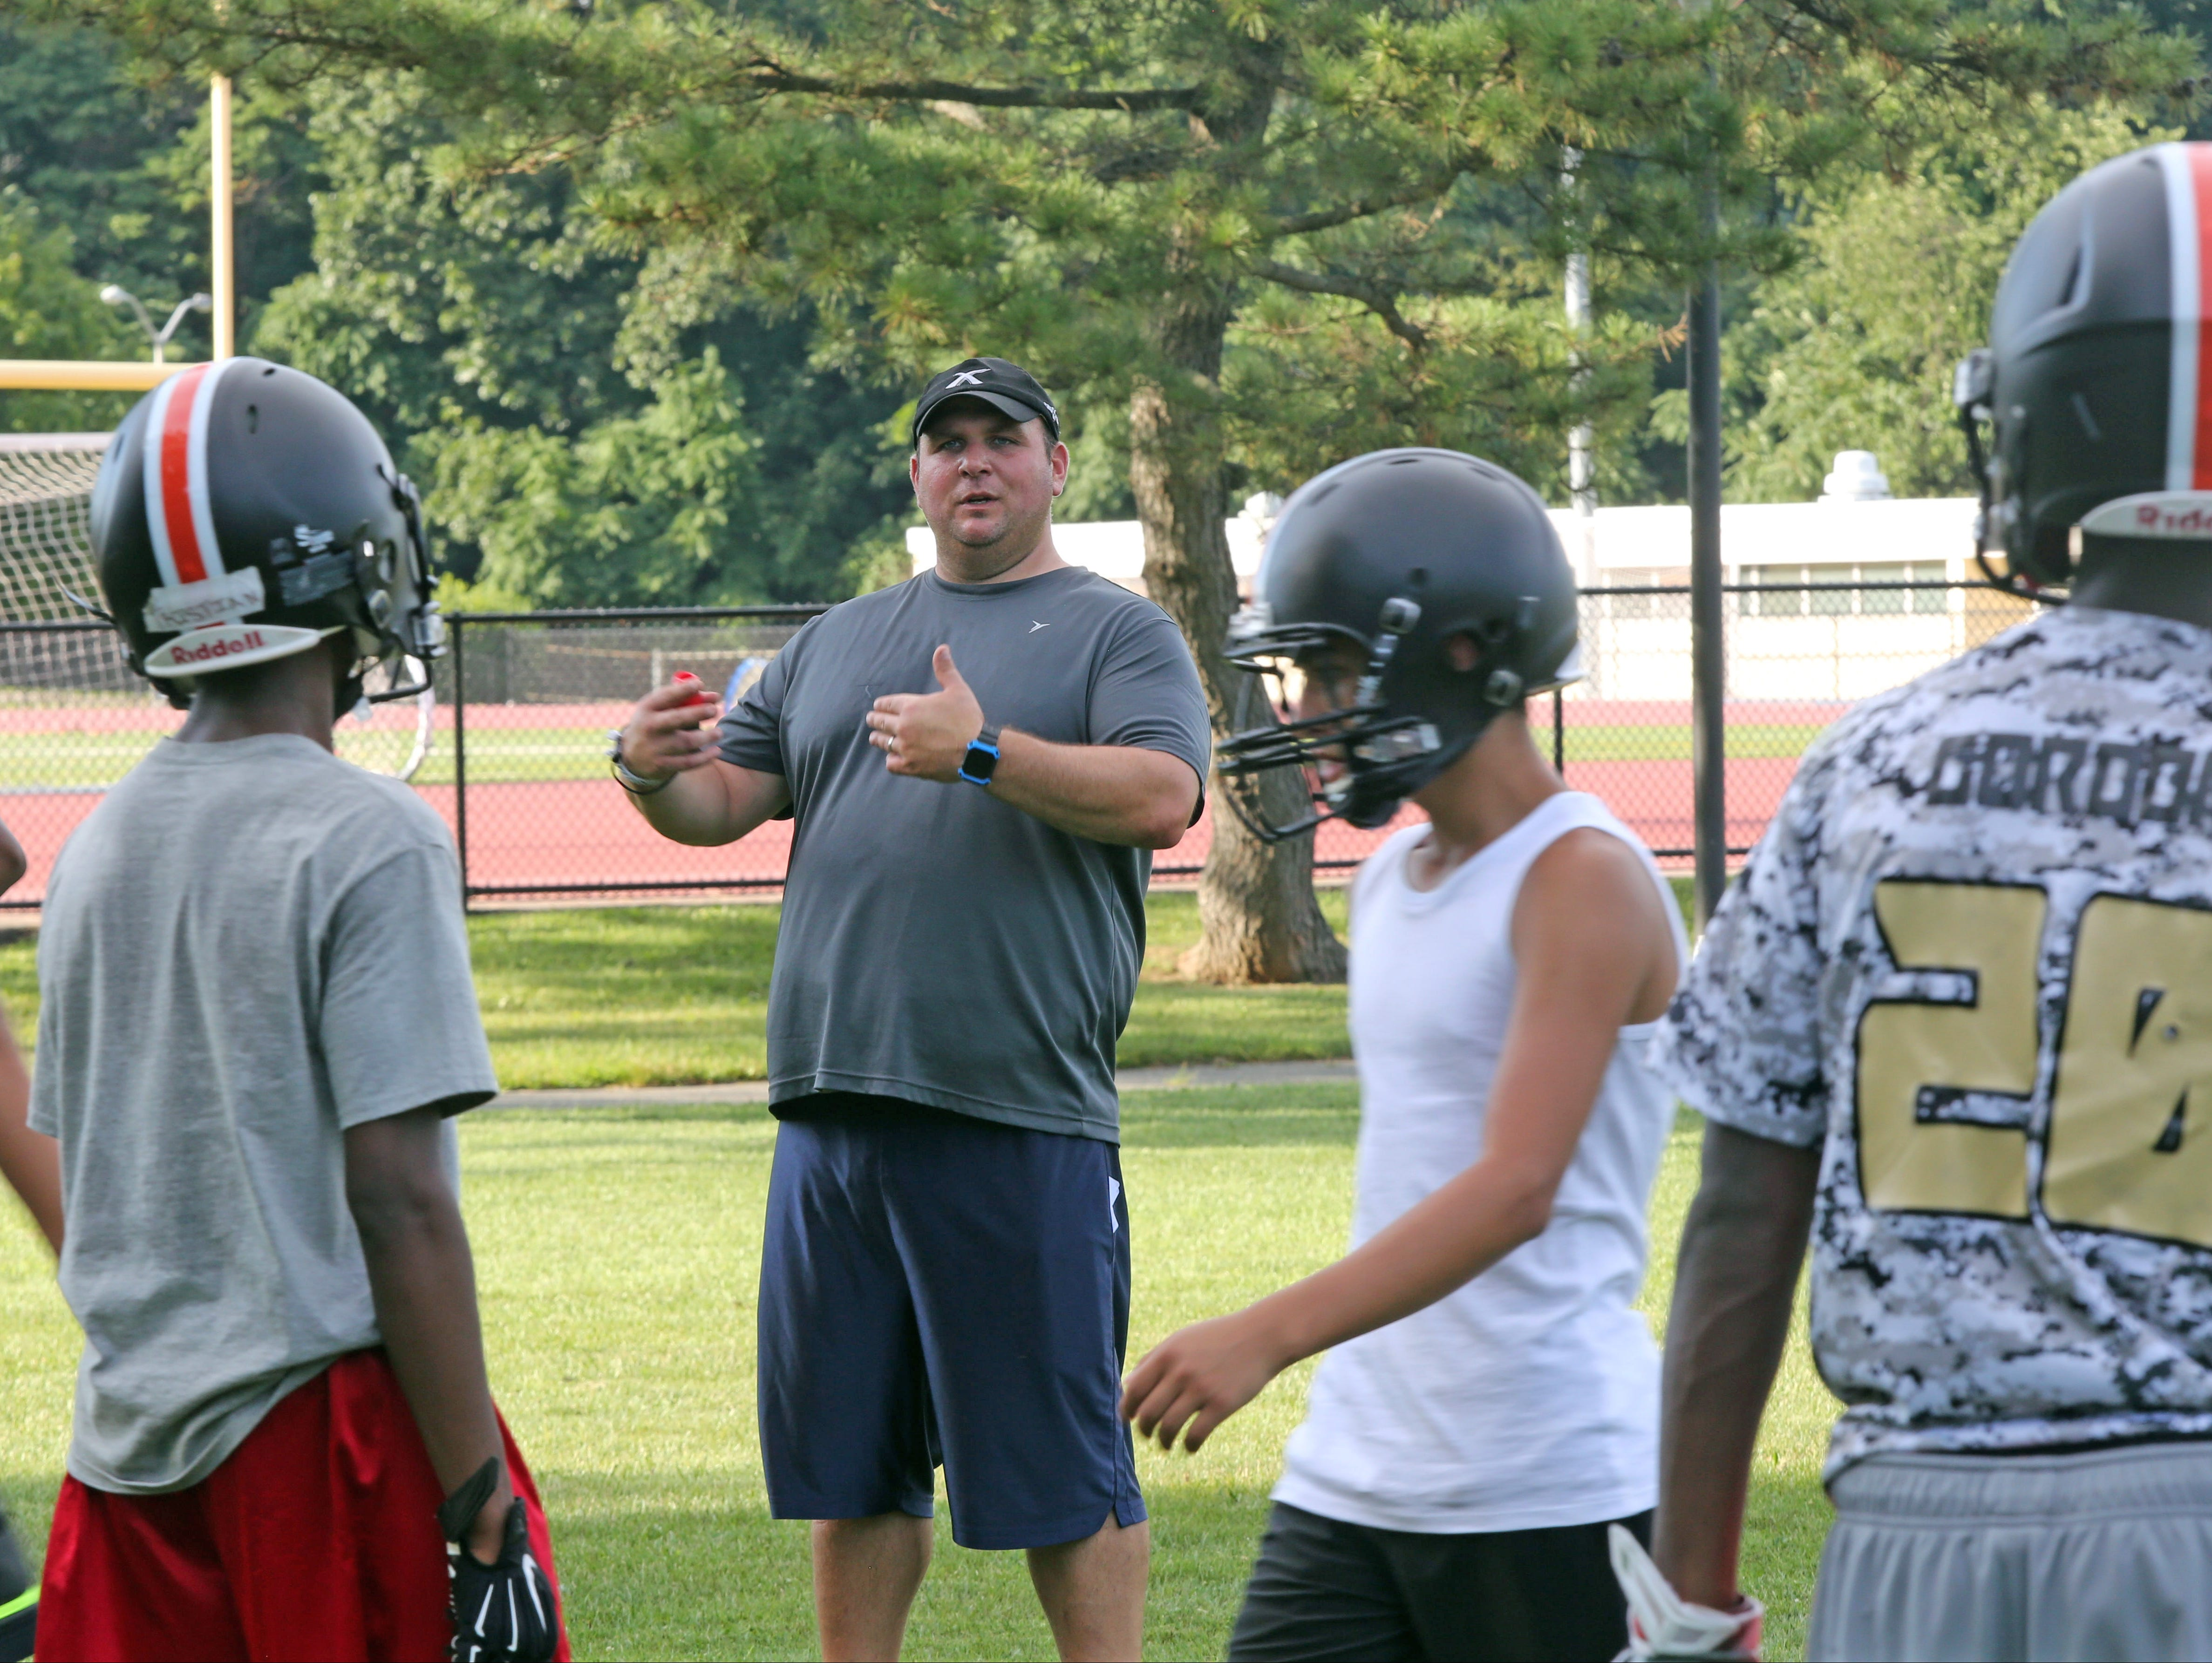 New White Plains coach Mike Lindberg, a former star lineman at Clarkstown South who had been a longtime assistant at Arlington leads football practice at White Plains High School on Monday, Aug. 14, 2016.